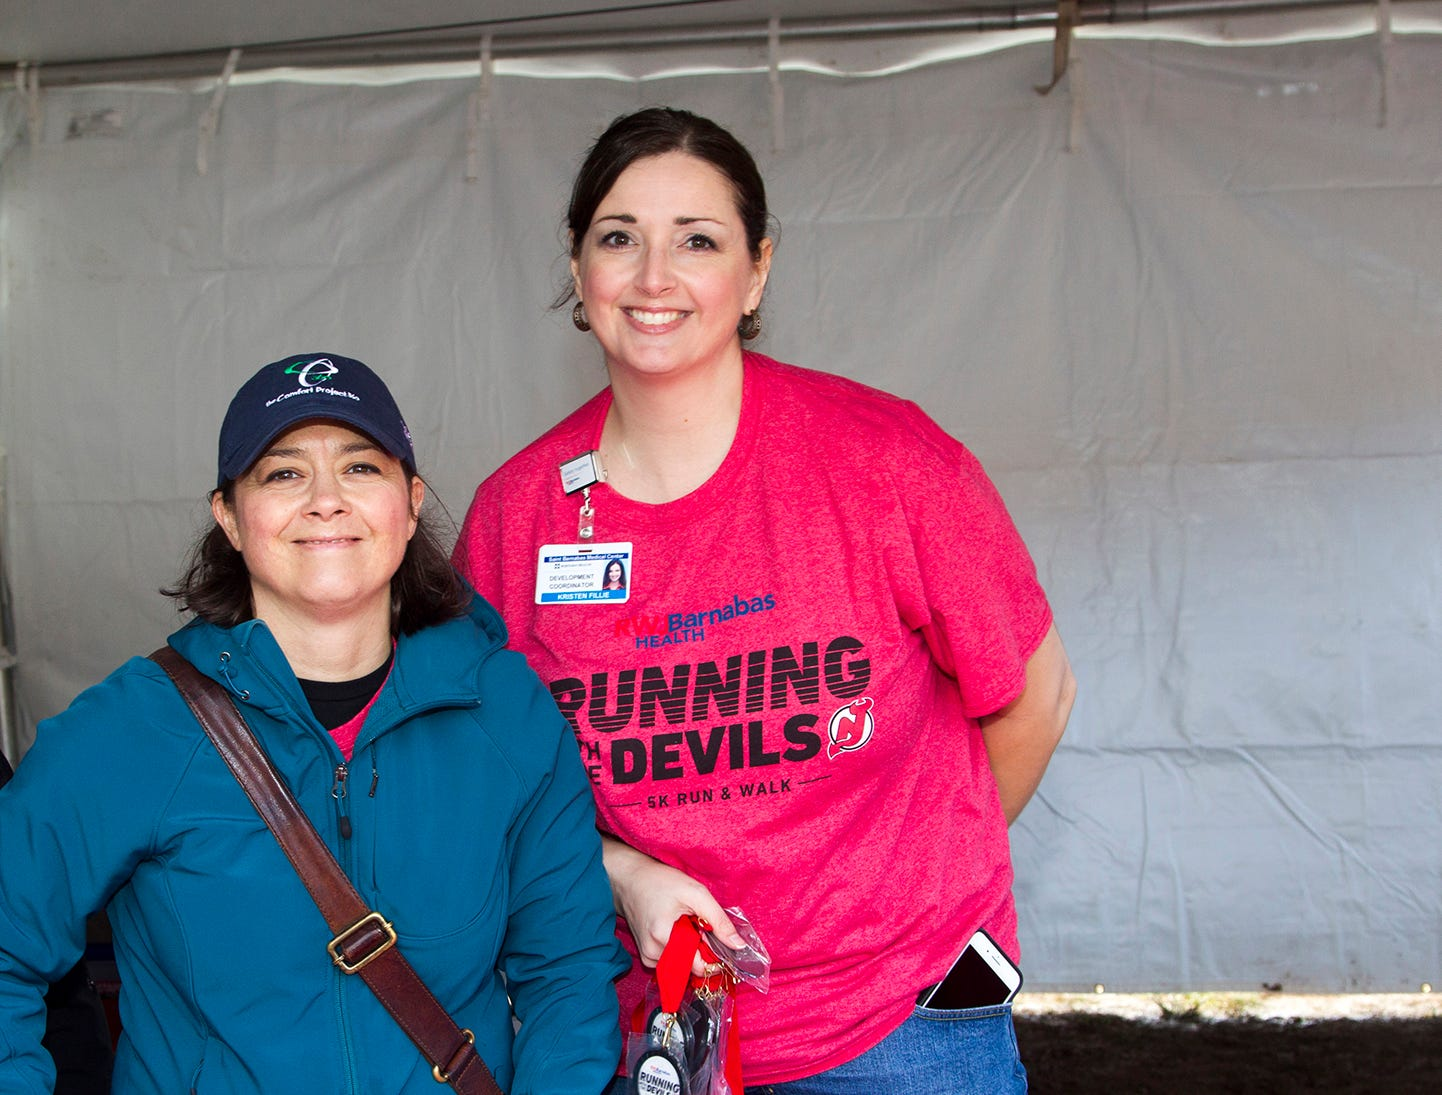 Jenny and Kristen. RWJBarnabas Health Running with the Devils 5K Run and Family Fun Walk at South Mountain Recreation in West Orange. 10/03/2018